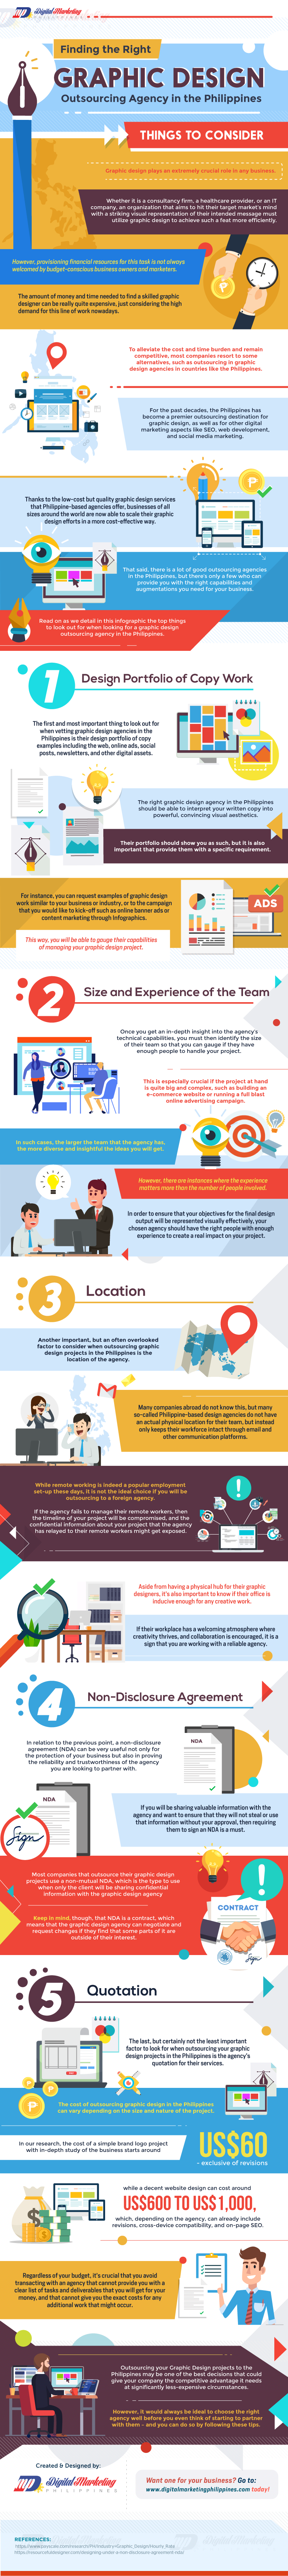 Finding The Right Graphic Design Outsourcing Agency In The Philippines Infographic Infographic Marketing Social Media Infographic Business Infographic